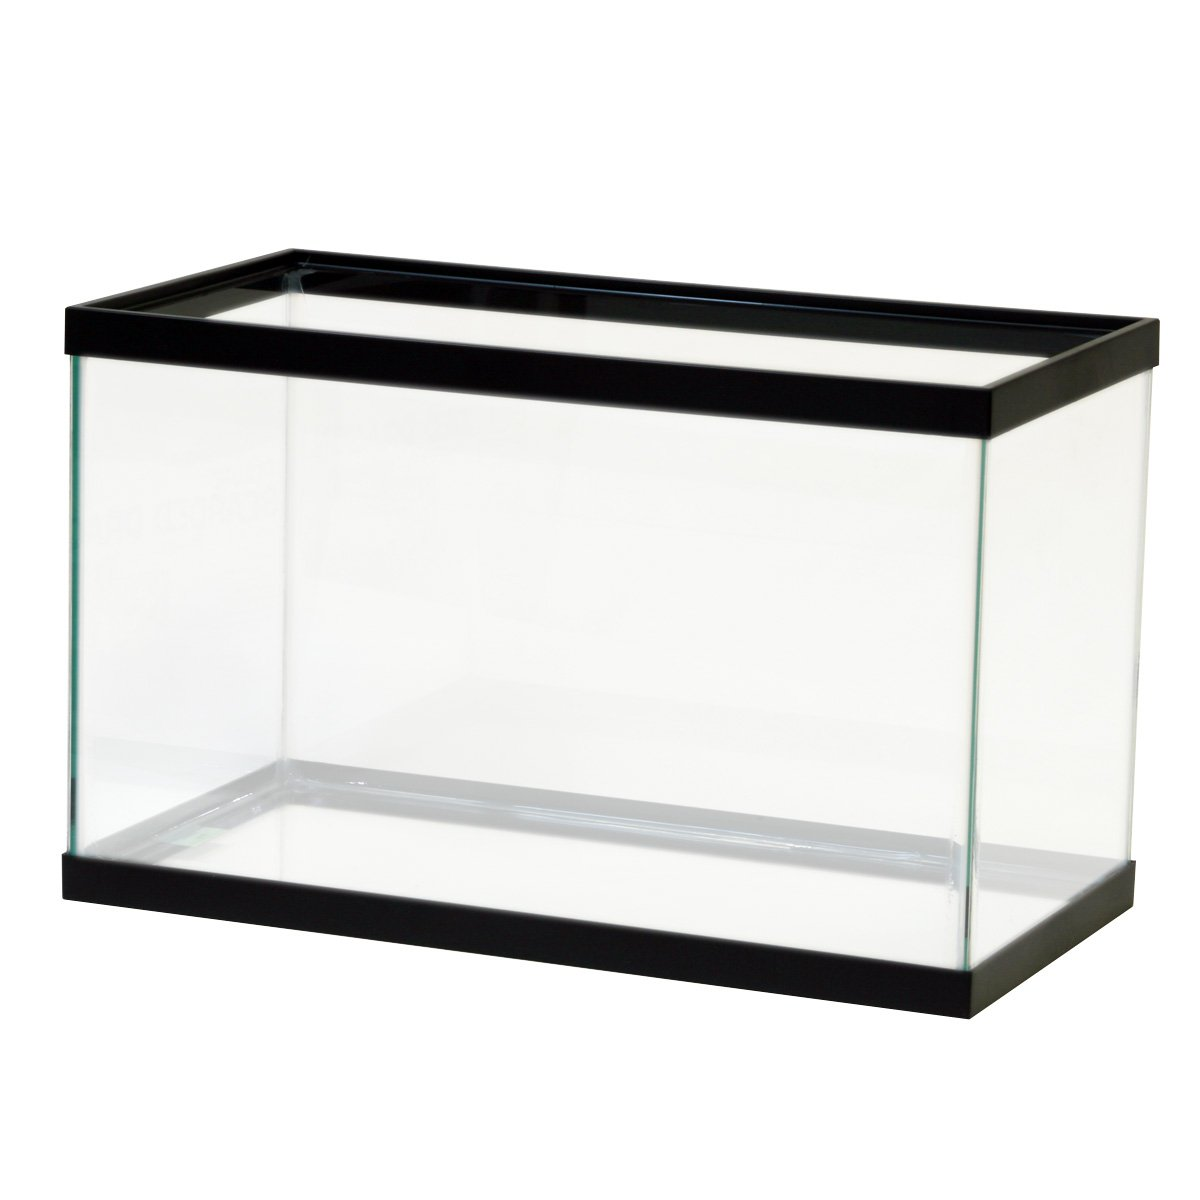 AQUEON All Glass Aquarium AAG09010 Tank, 10-Gallon 158005